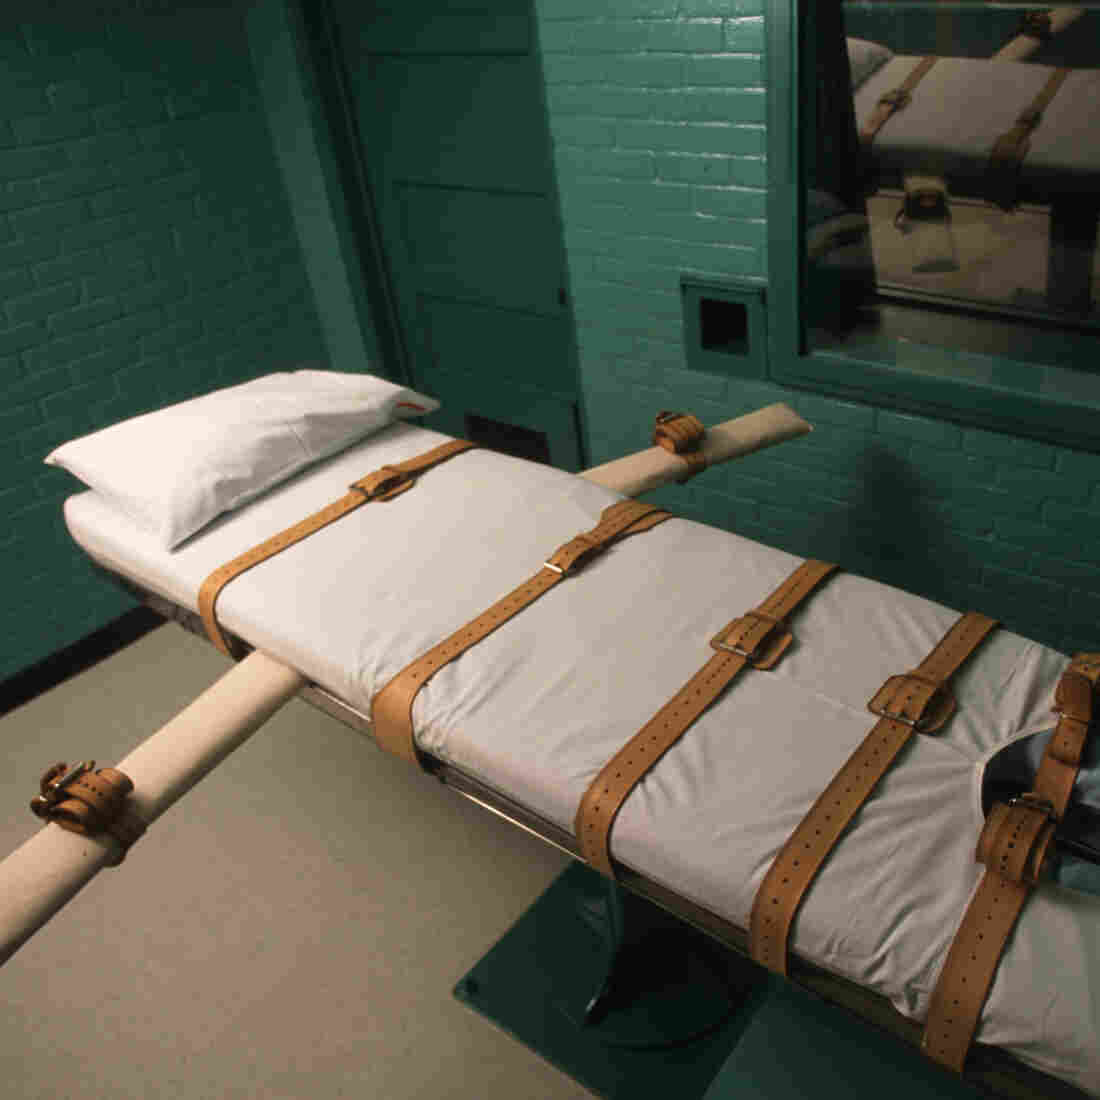 The Texas death chamber in Huntsville, Texas, where death-row inmates receive lethal injections.